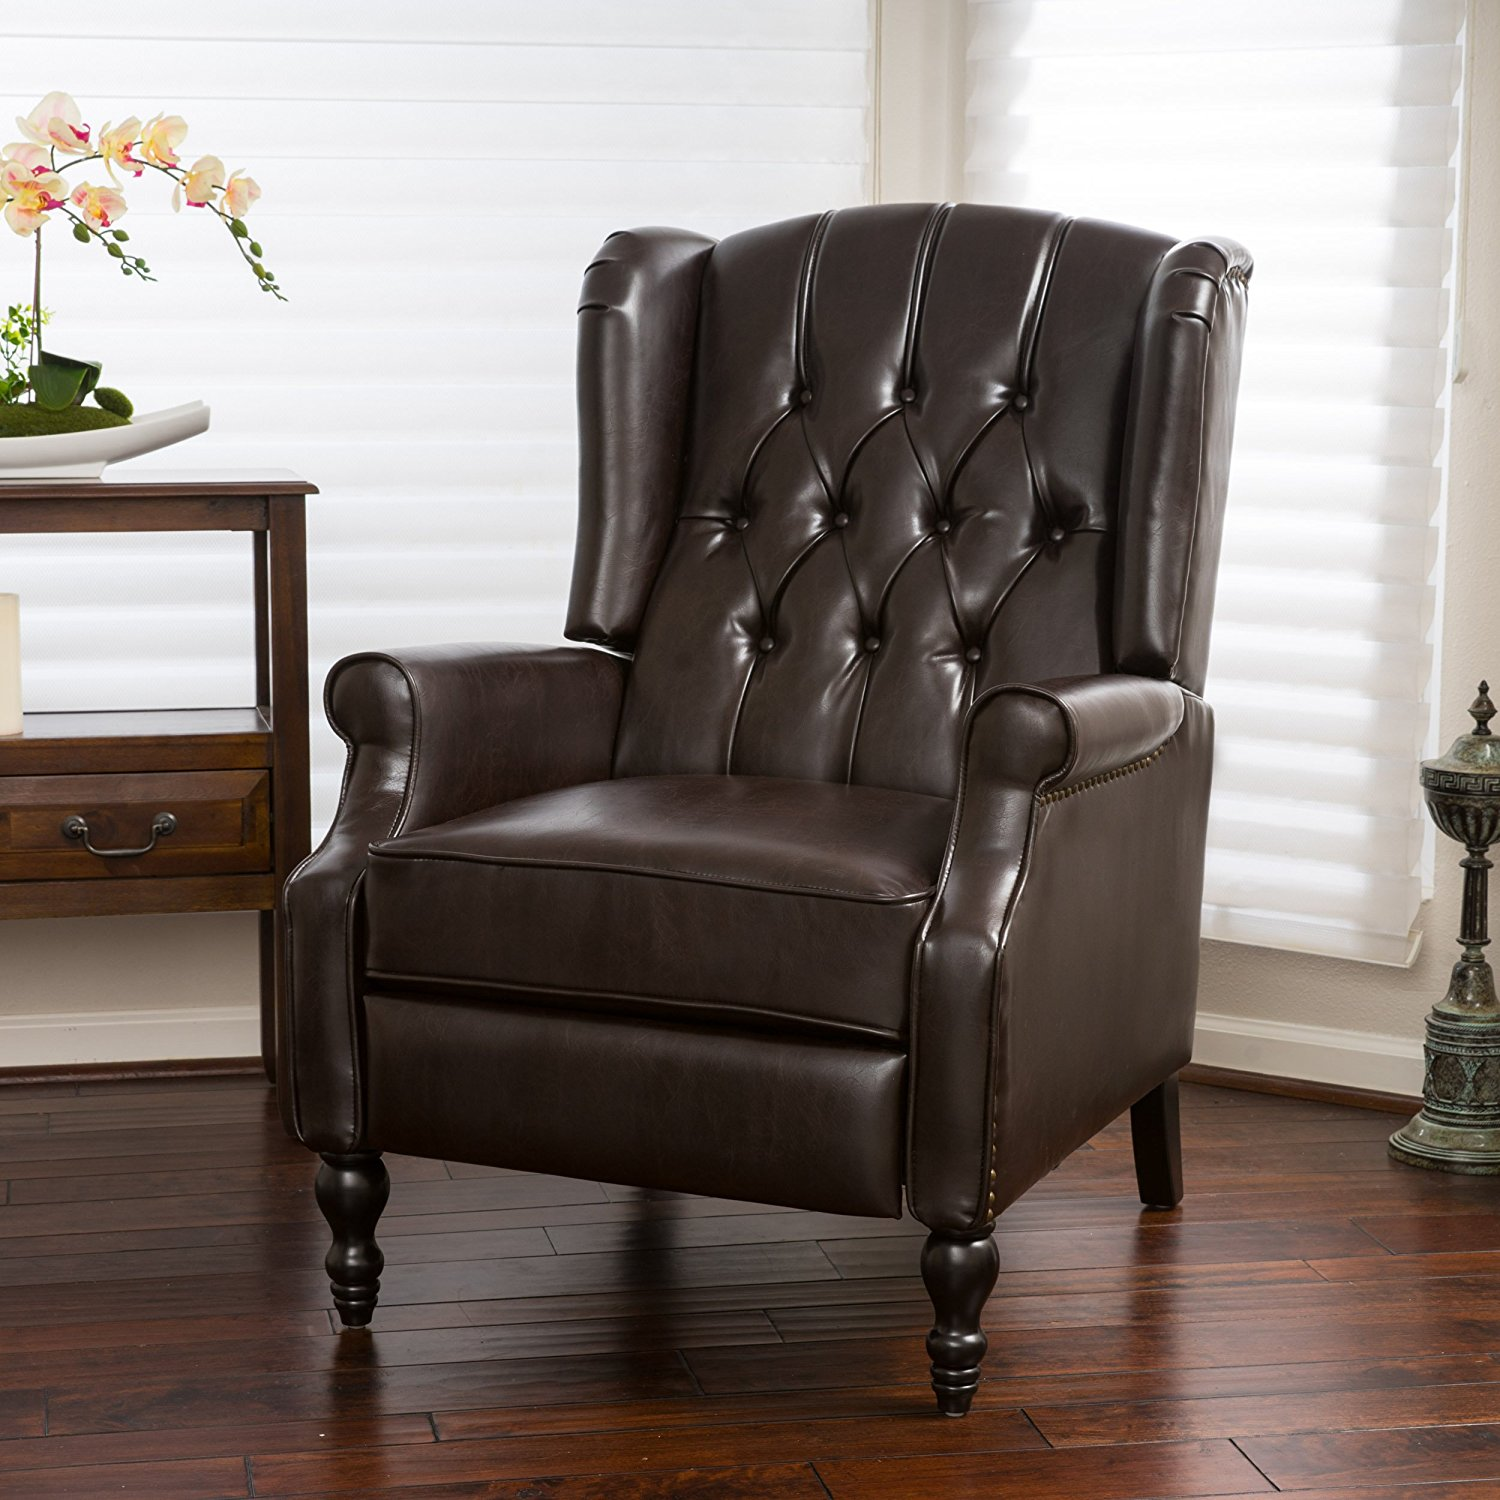 GDF Studio Elizabeth Tufted Recliner Arm Chair